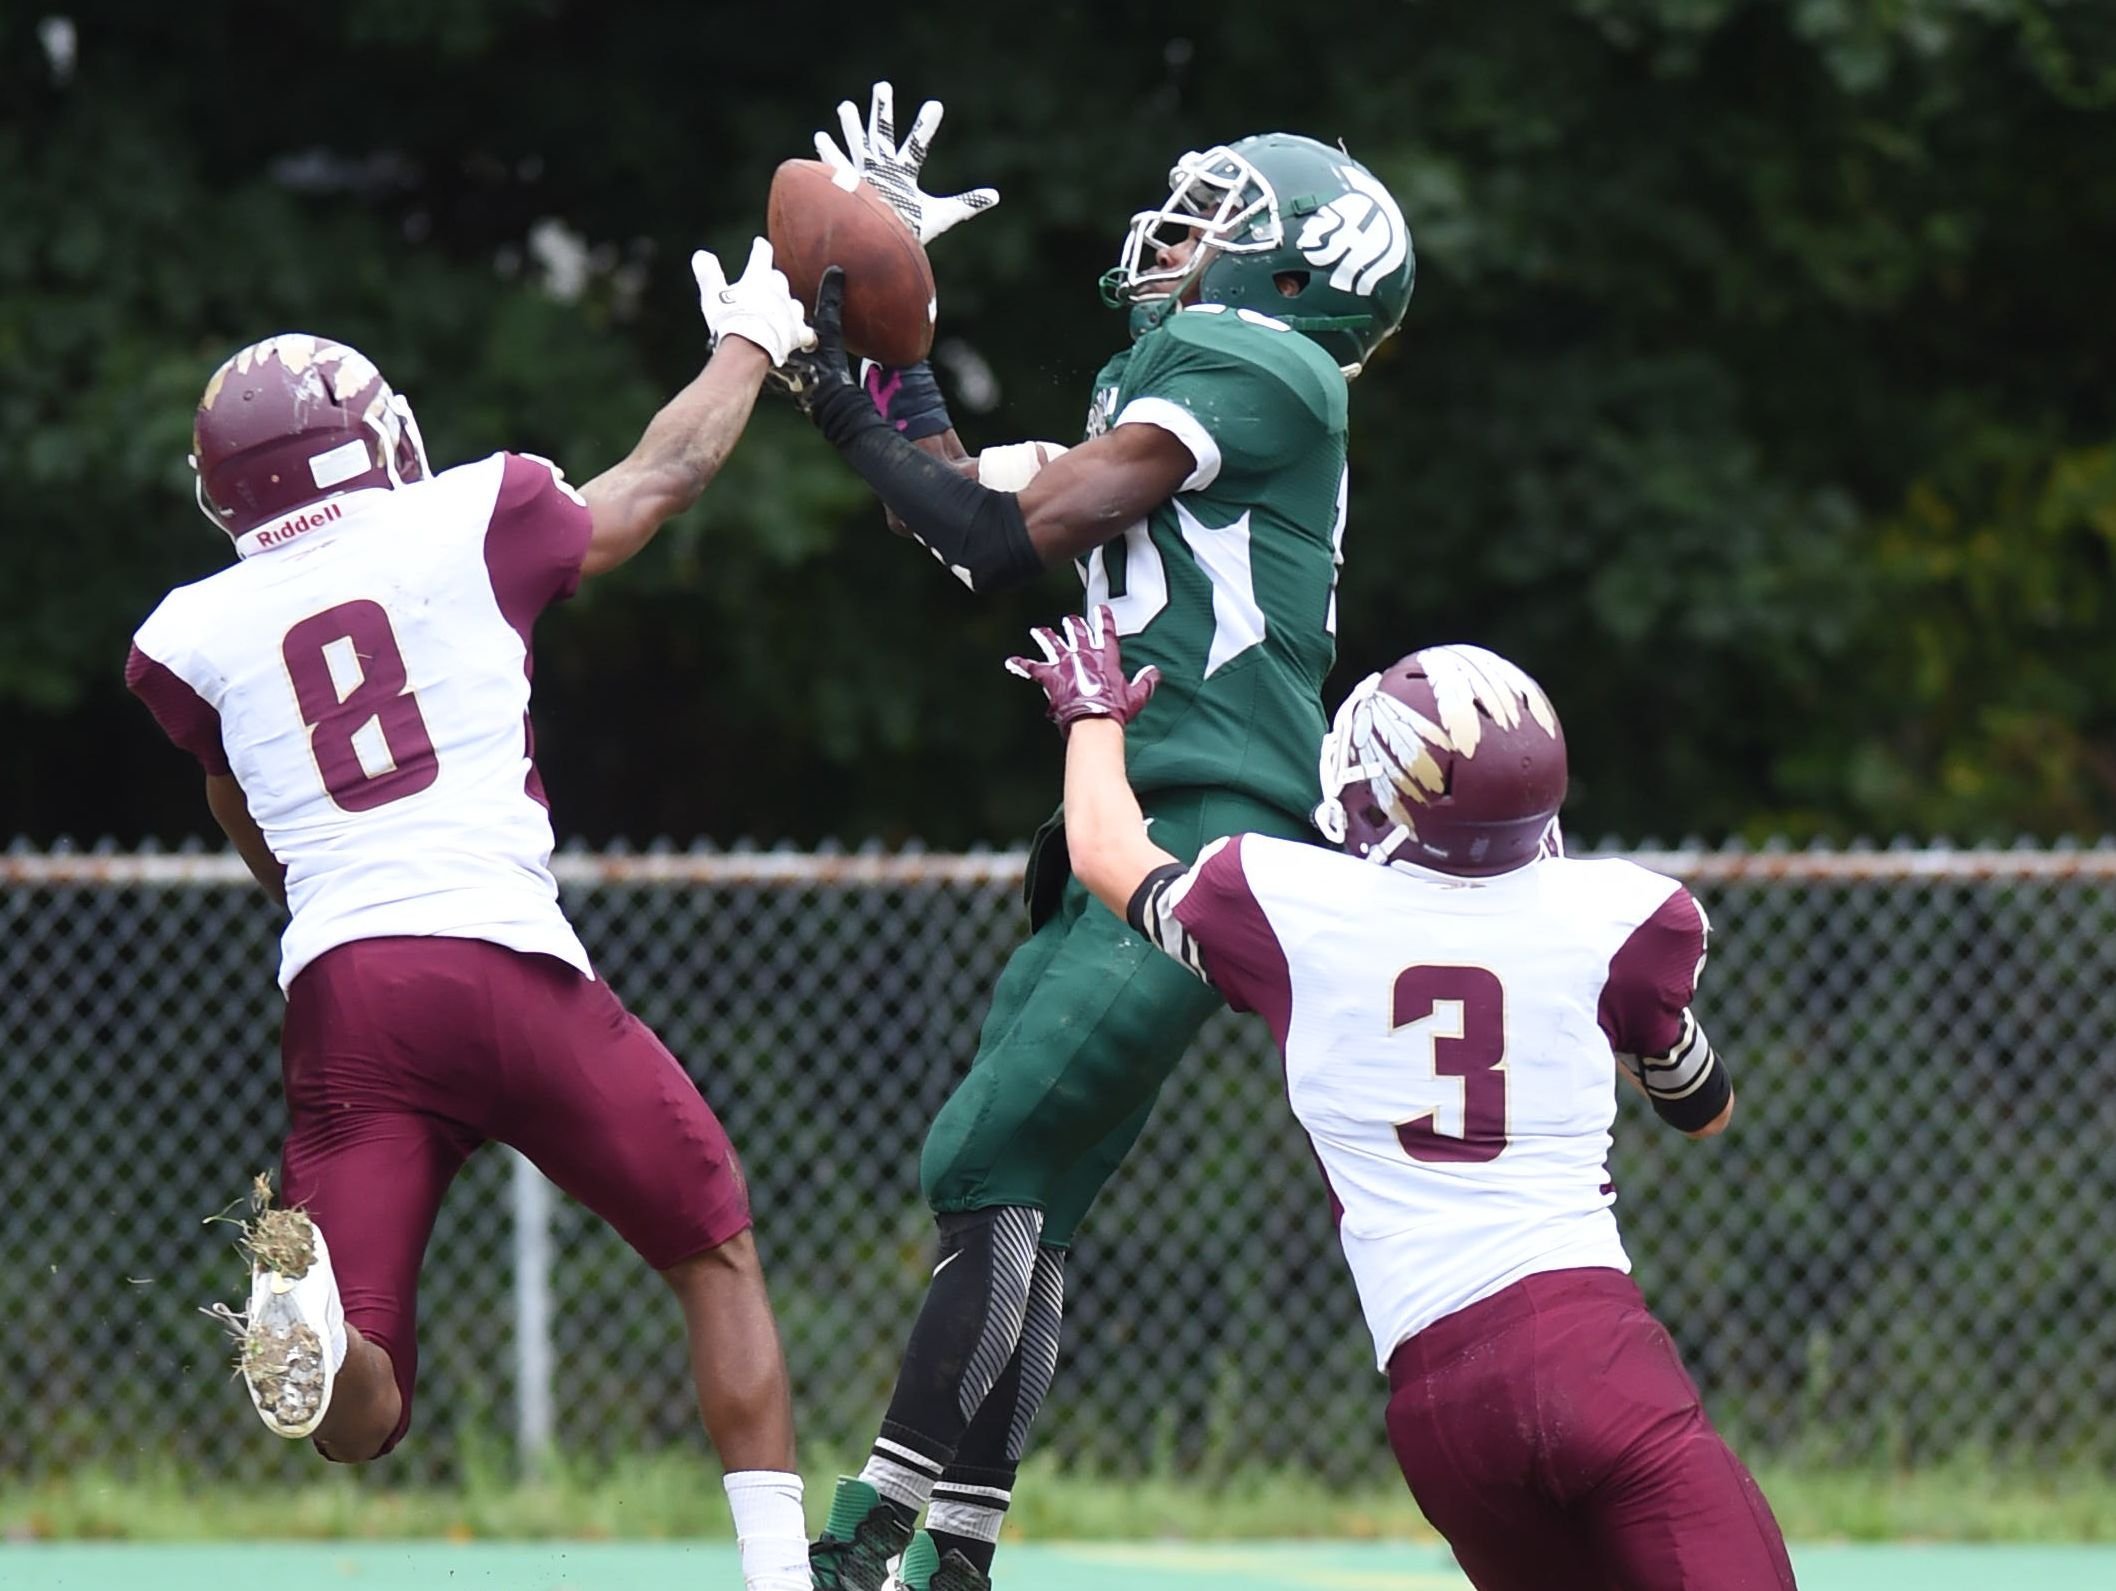 Spackenkill's Kabongo Barry makes a flying catch between O'Neill's, from left, Joel Baskerville and Tully Boylan during Saturday's game at Spackenkill.